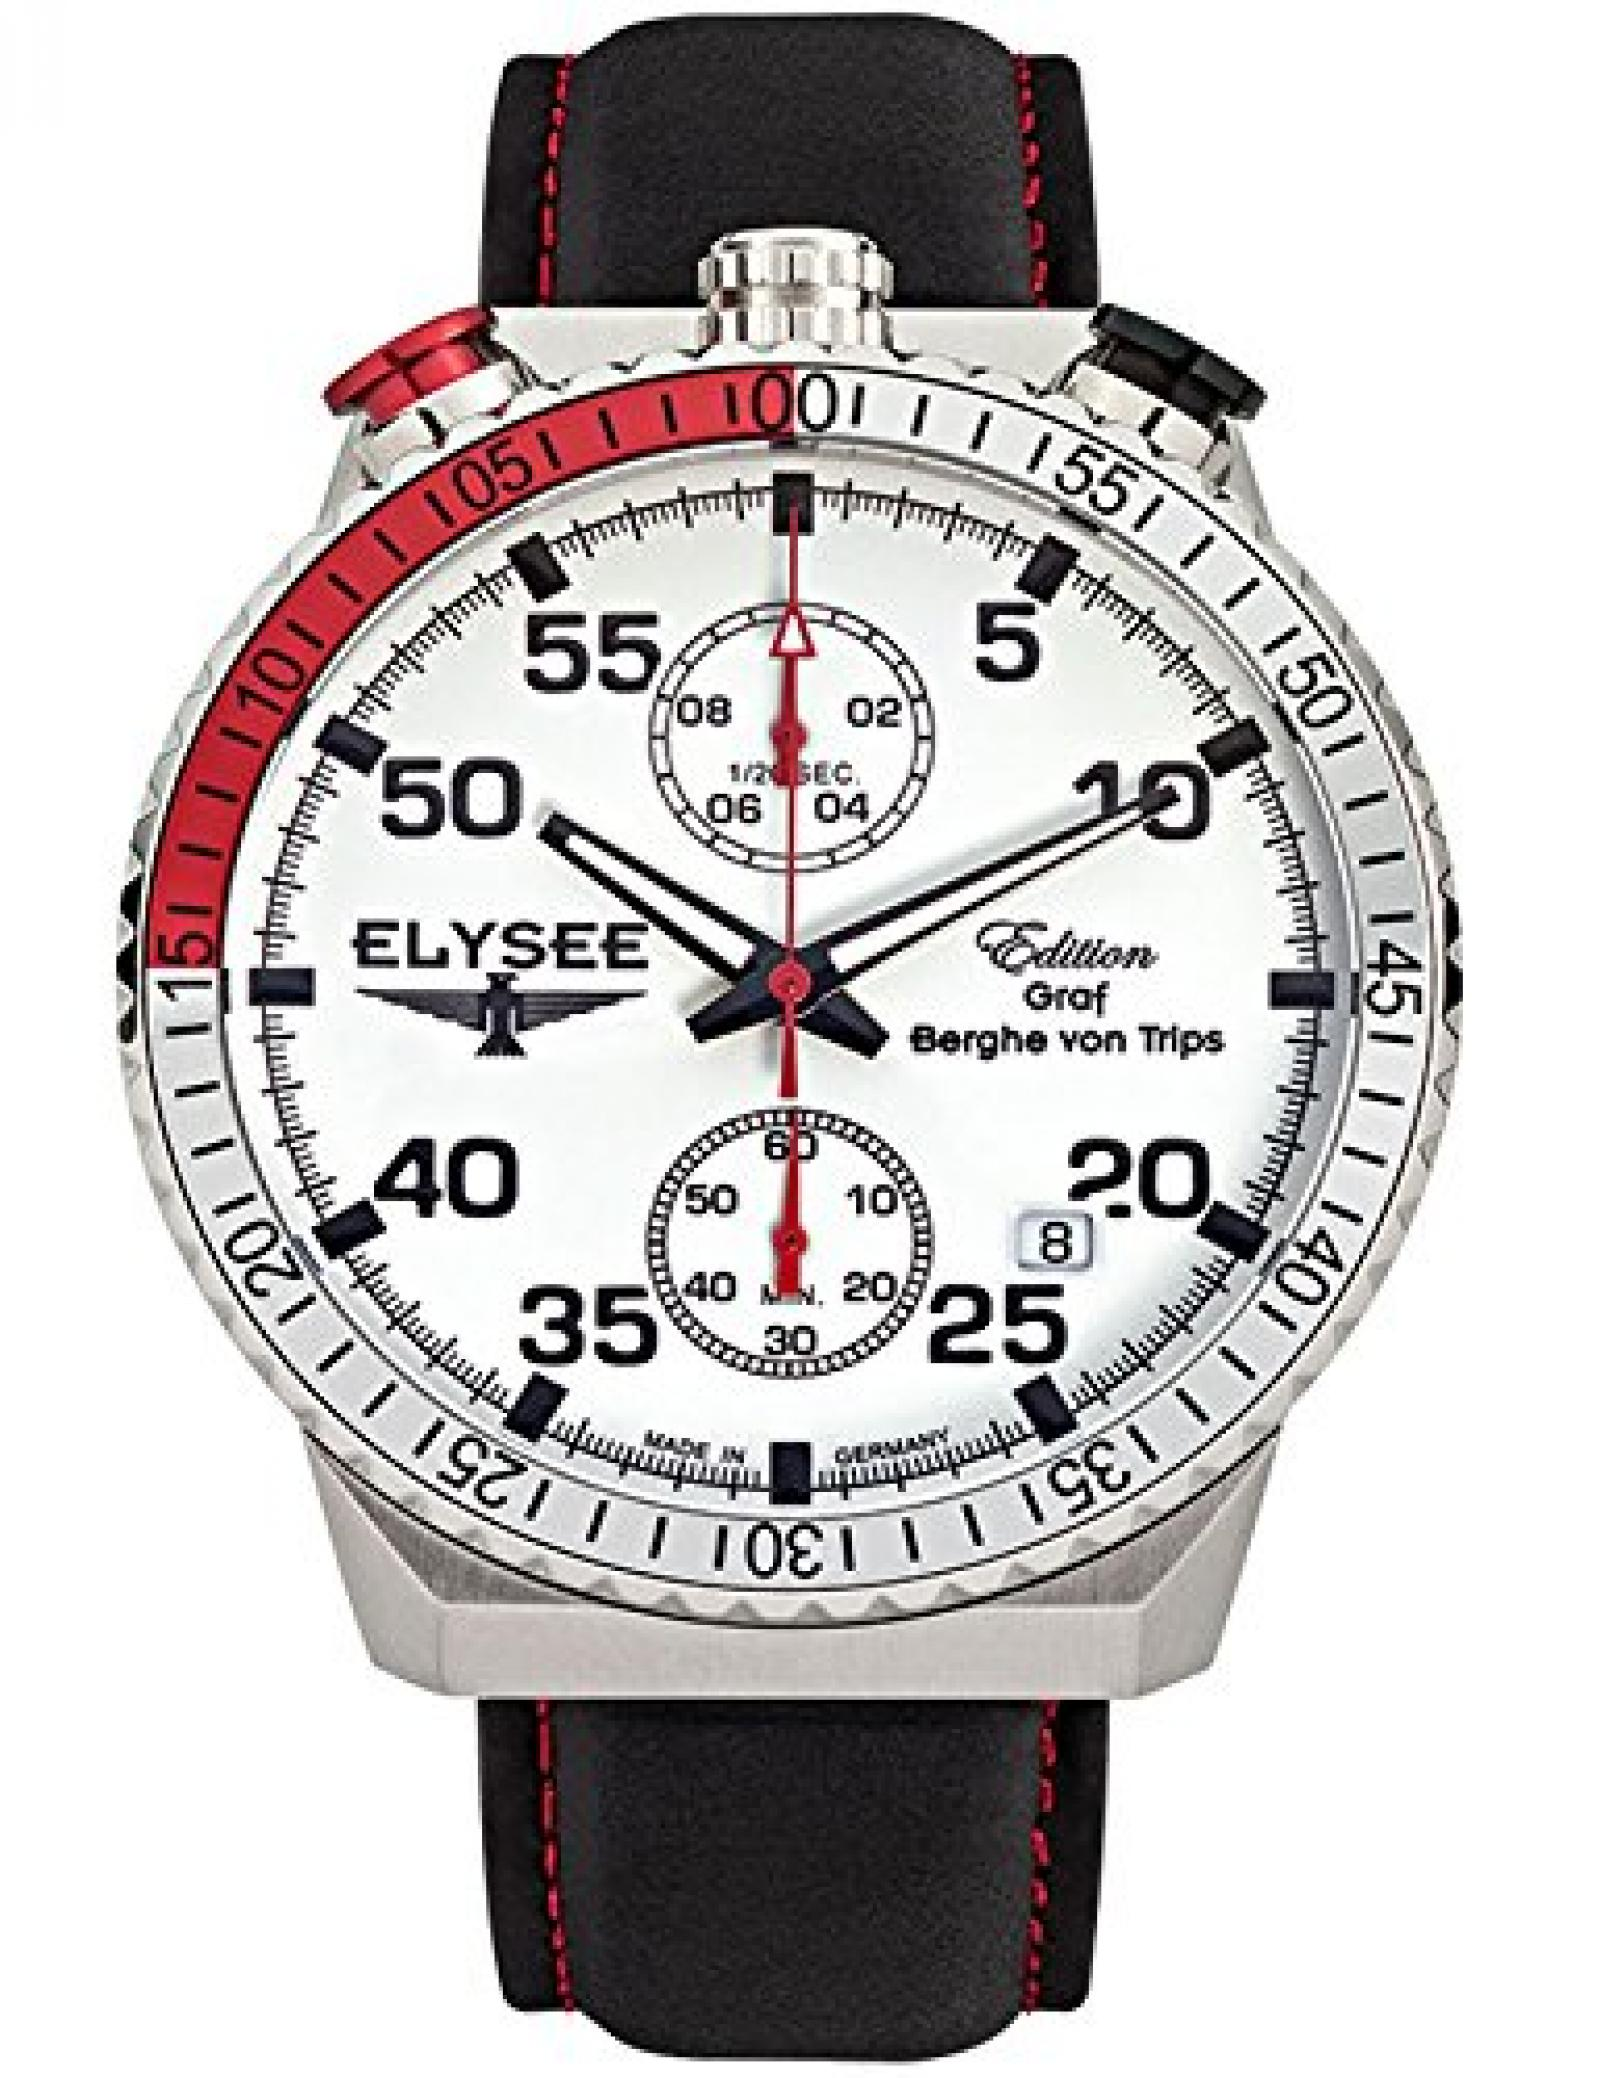 Elysee Herrenuhr Chronograph Graf Berghe Von Trips Rally Timer I 80516